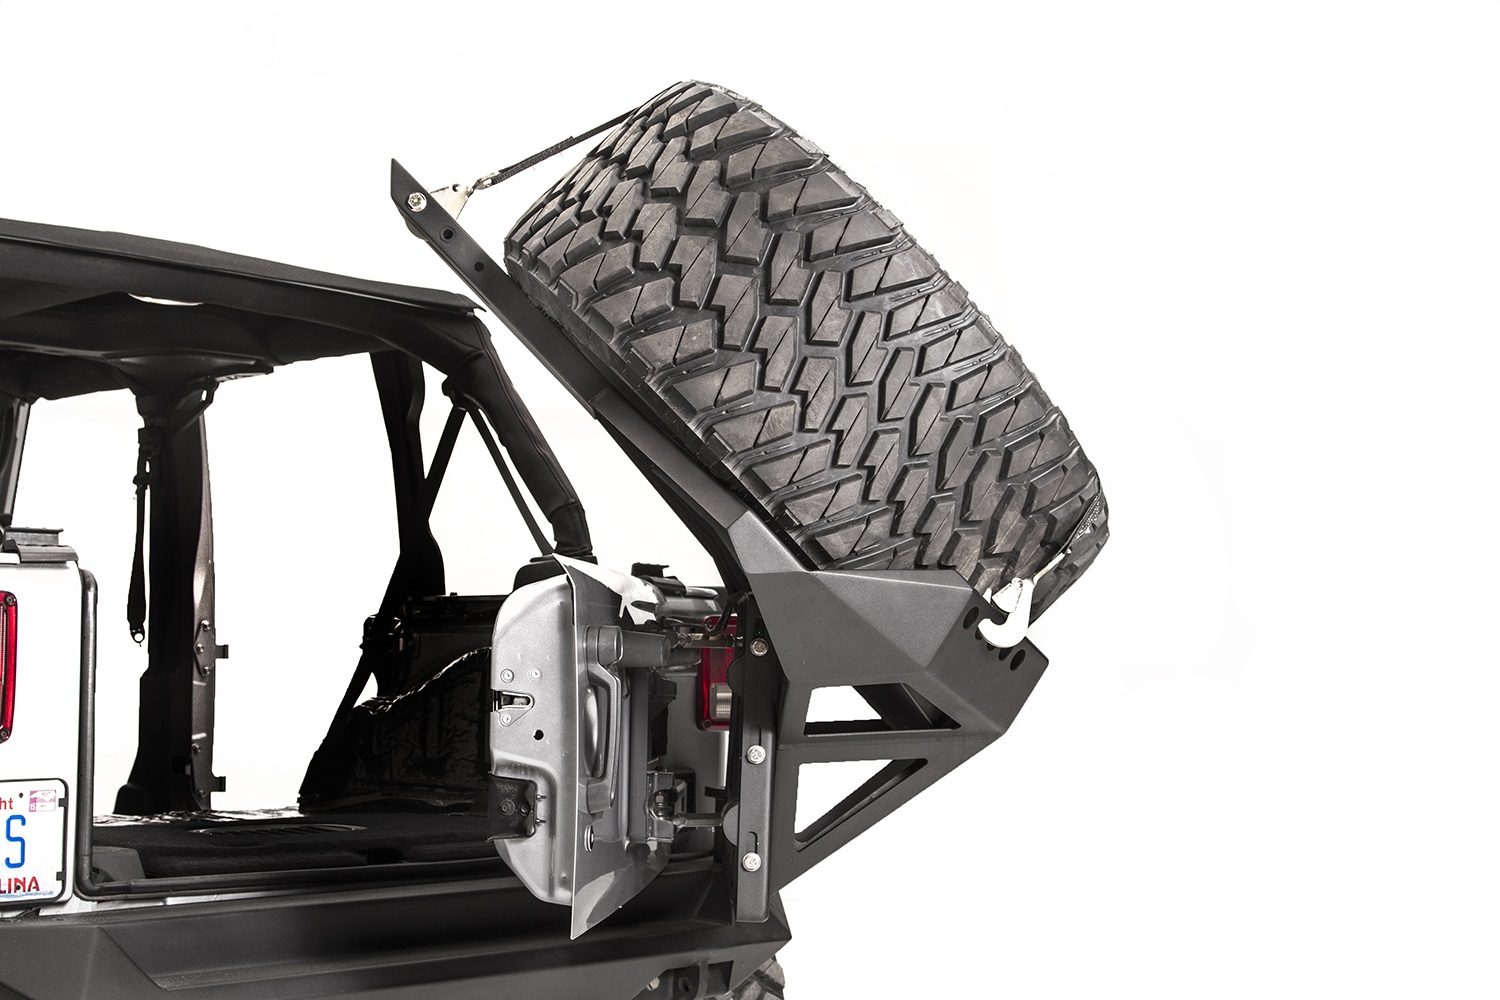 Fab Fours Jk2070 1 Spare Tire Carrier Fits 07 18 Wrangler Jk 1955 Ford F100